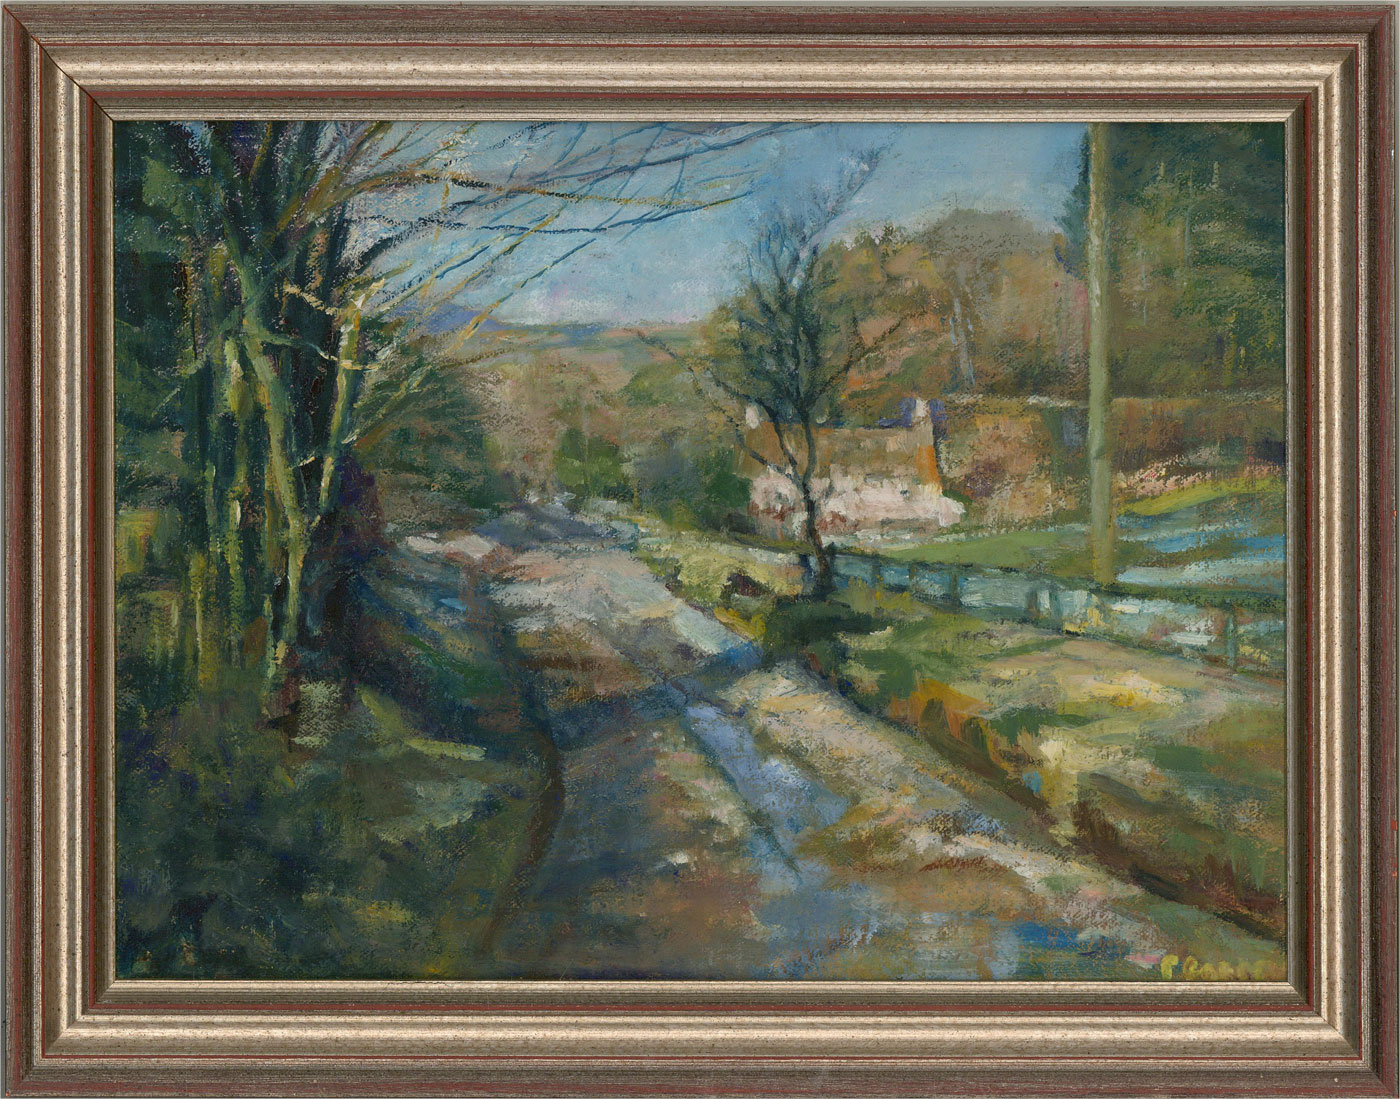 P.C. - Contemporary Oil, Country Lane